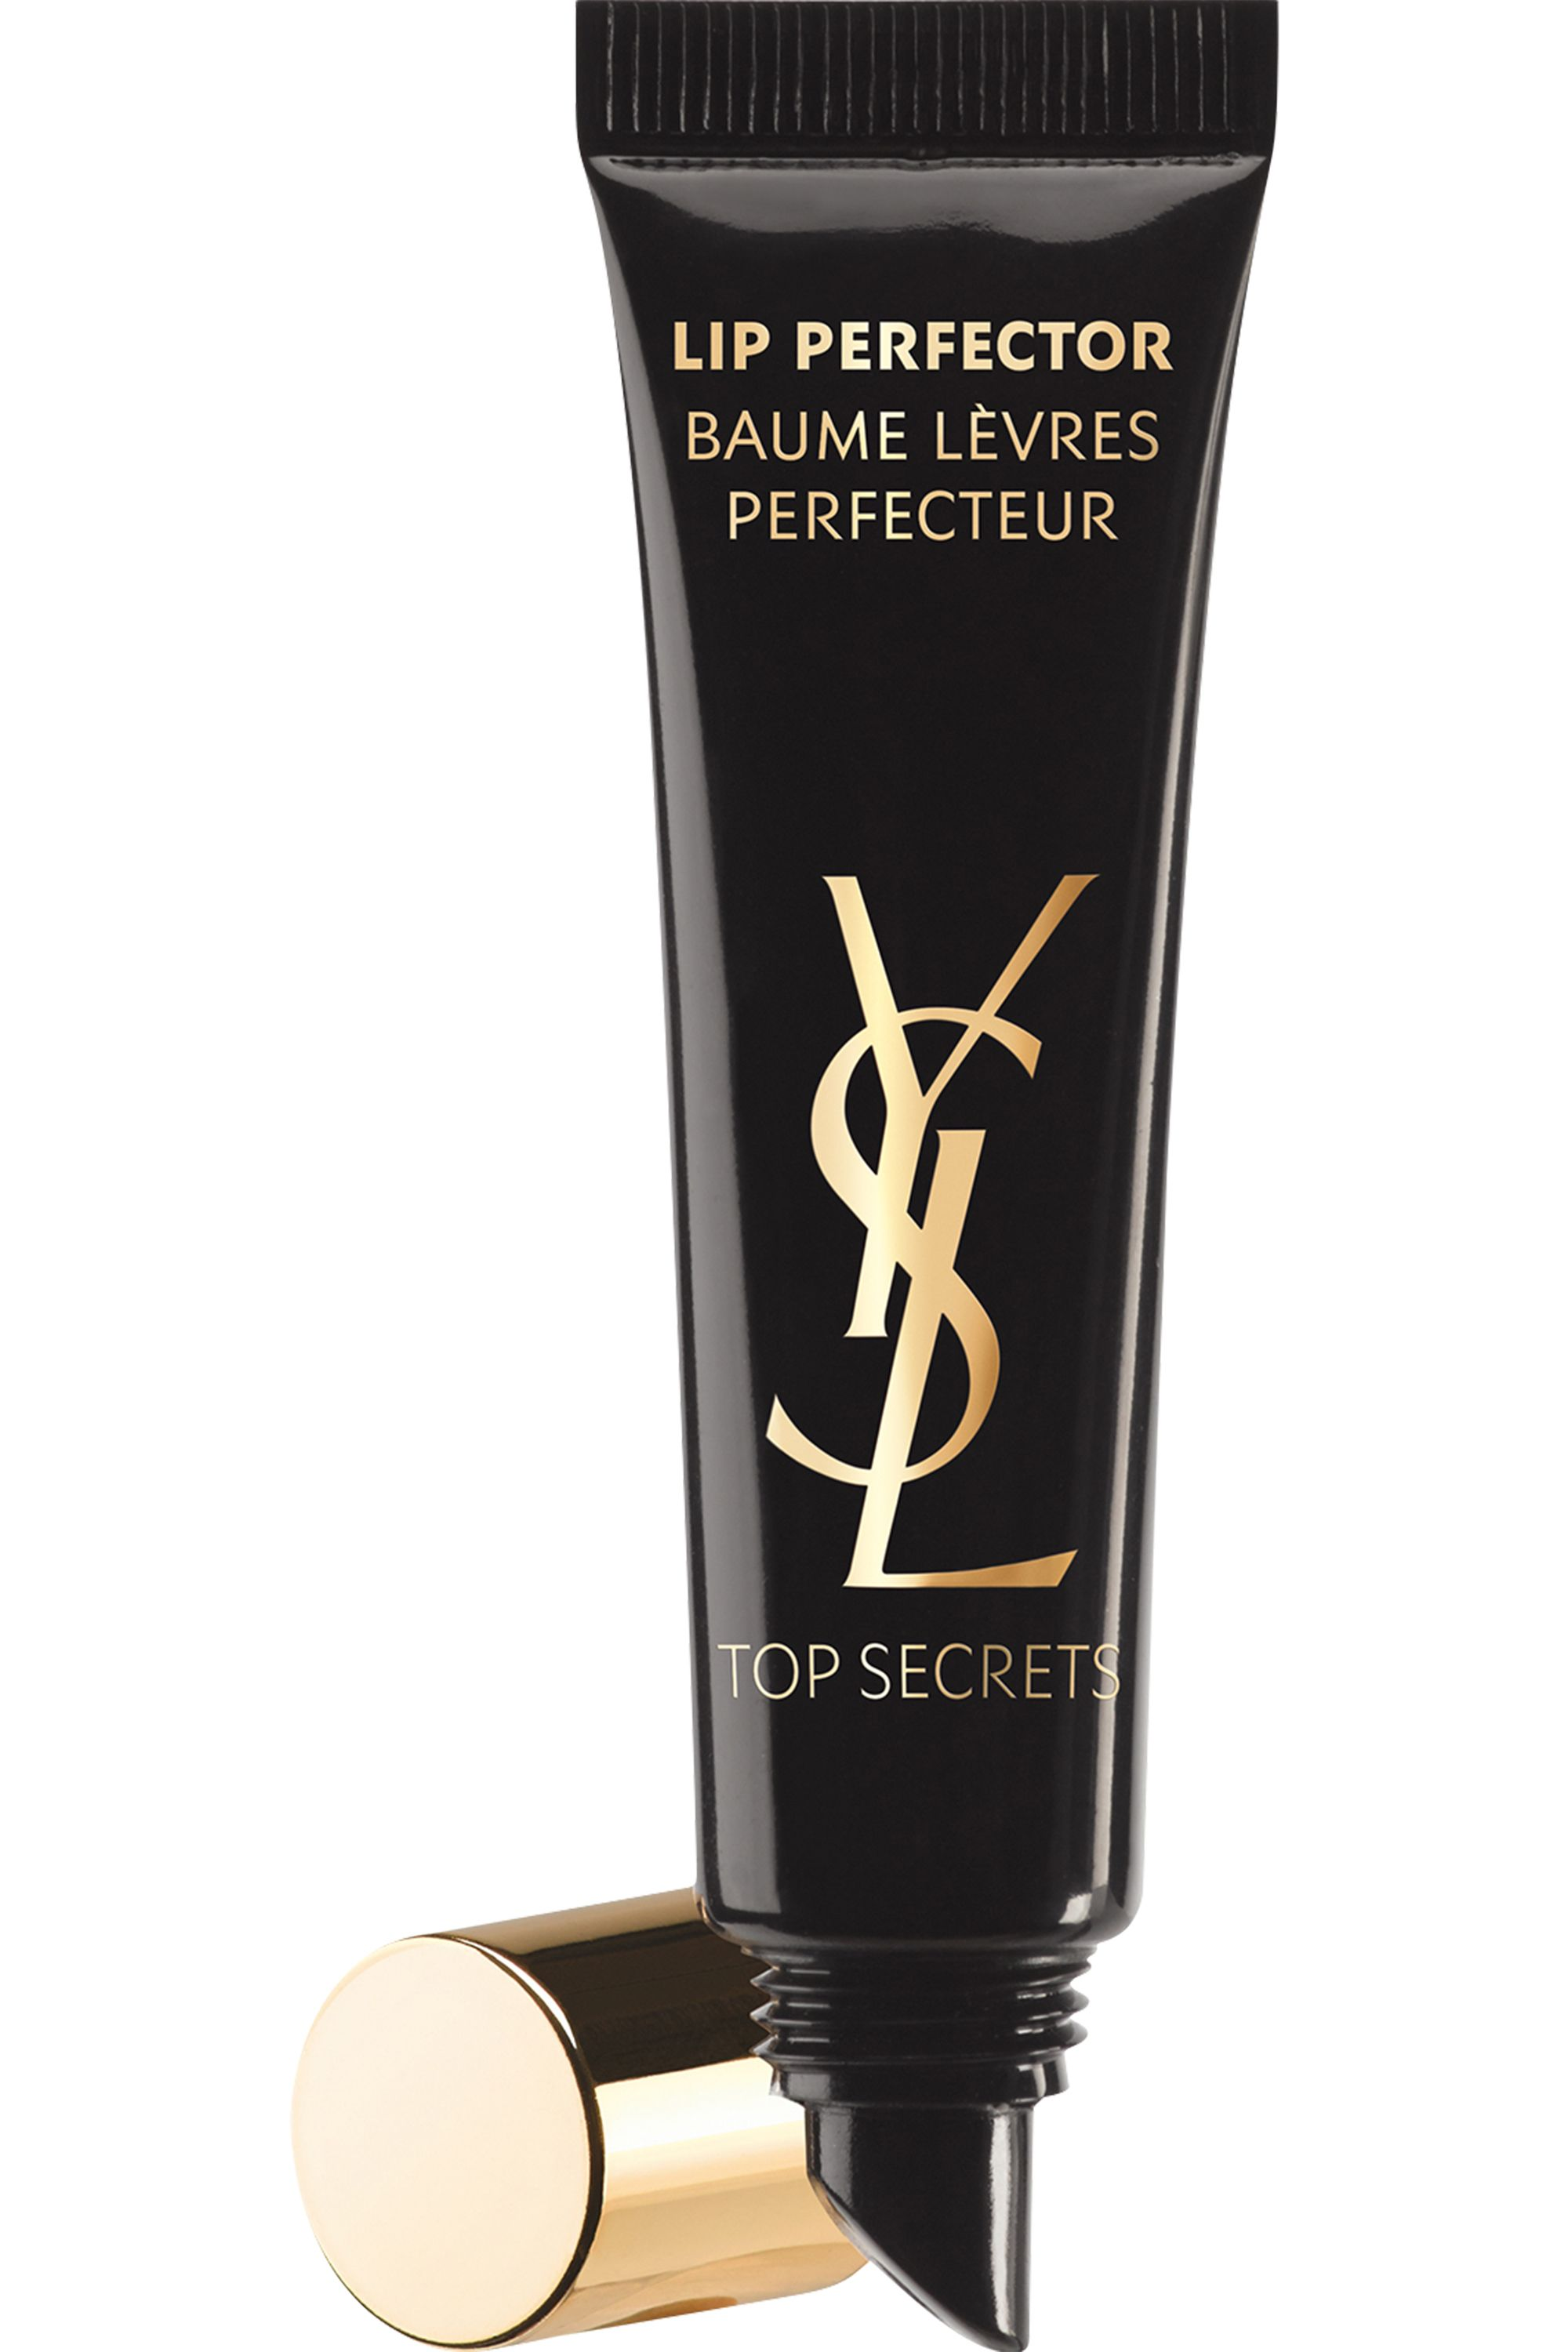 Blissim : Yves Saint Laurent - Top Secrets Baume à Lèvres Perfecteur - Top Secrets Baume à Lèvres Perfecteur